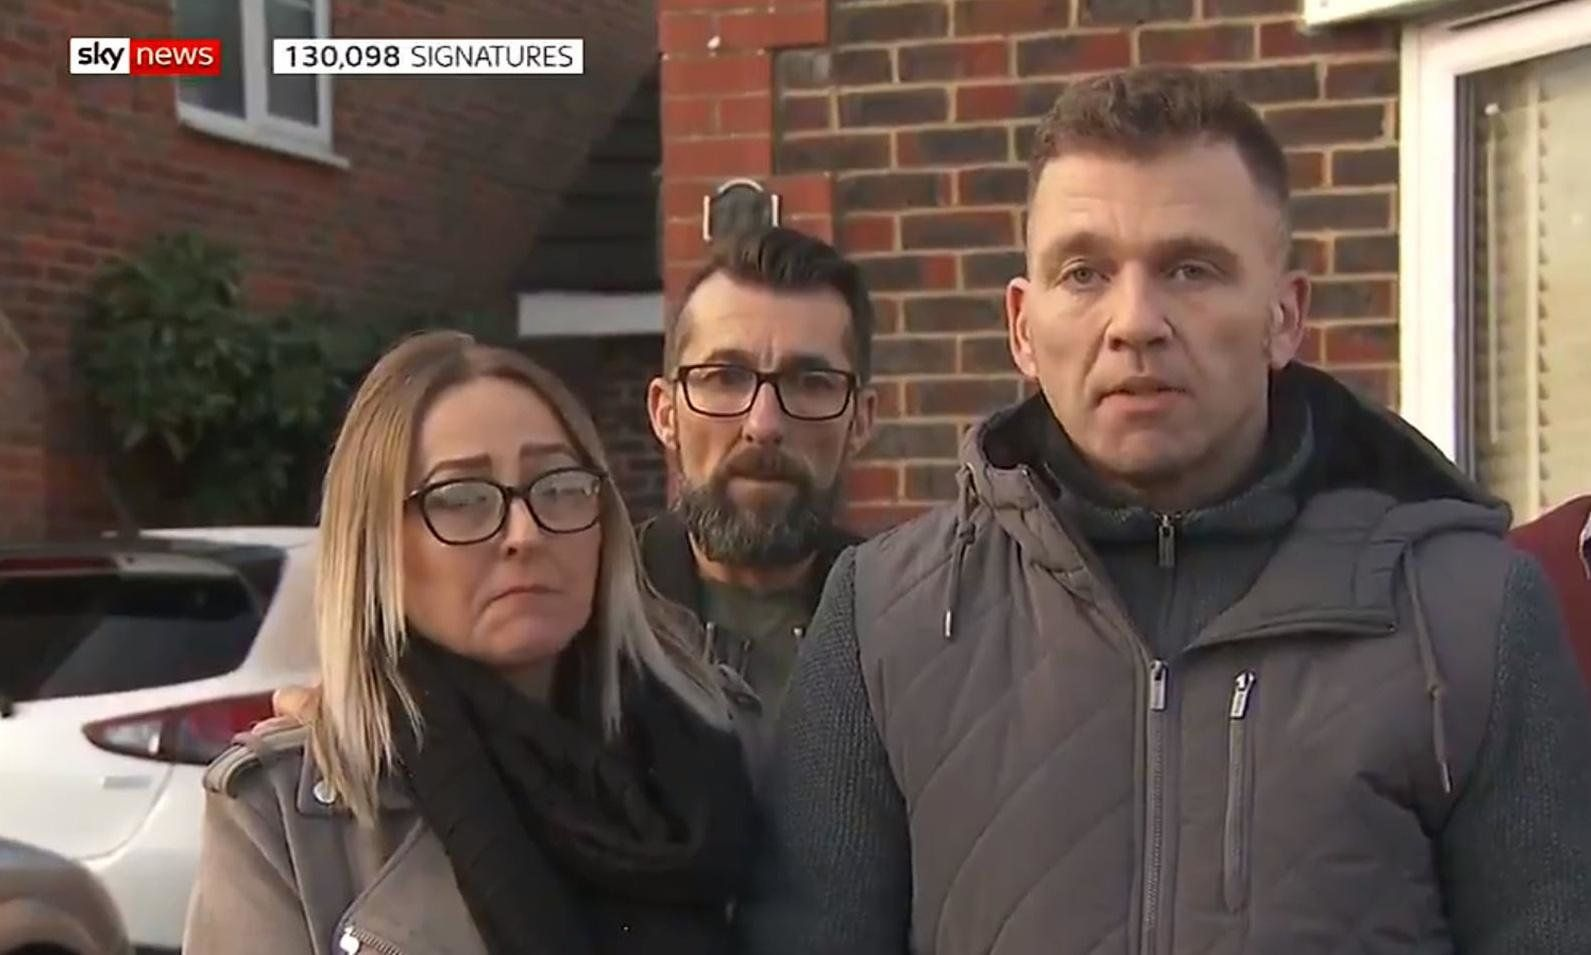 Couple Held Over Gatwick Drone Chaos Feel 'Completely Violated' Following